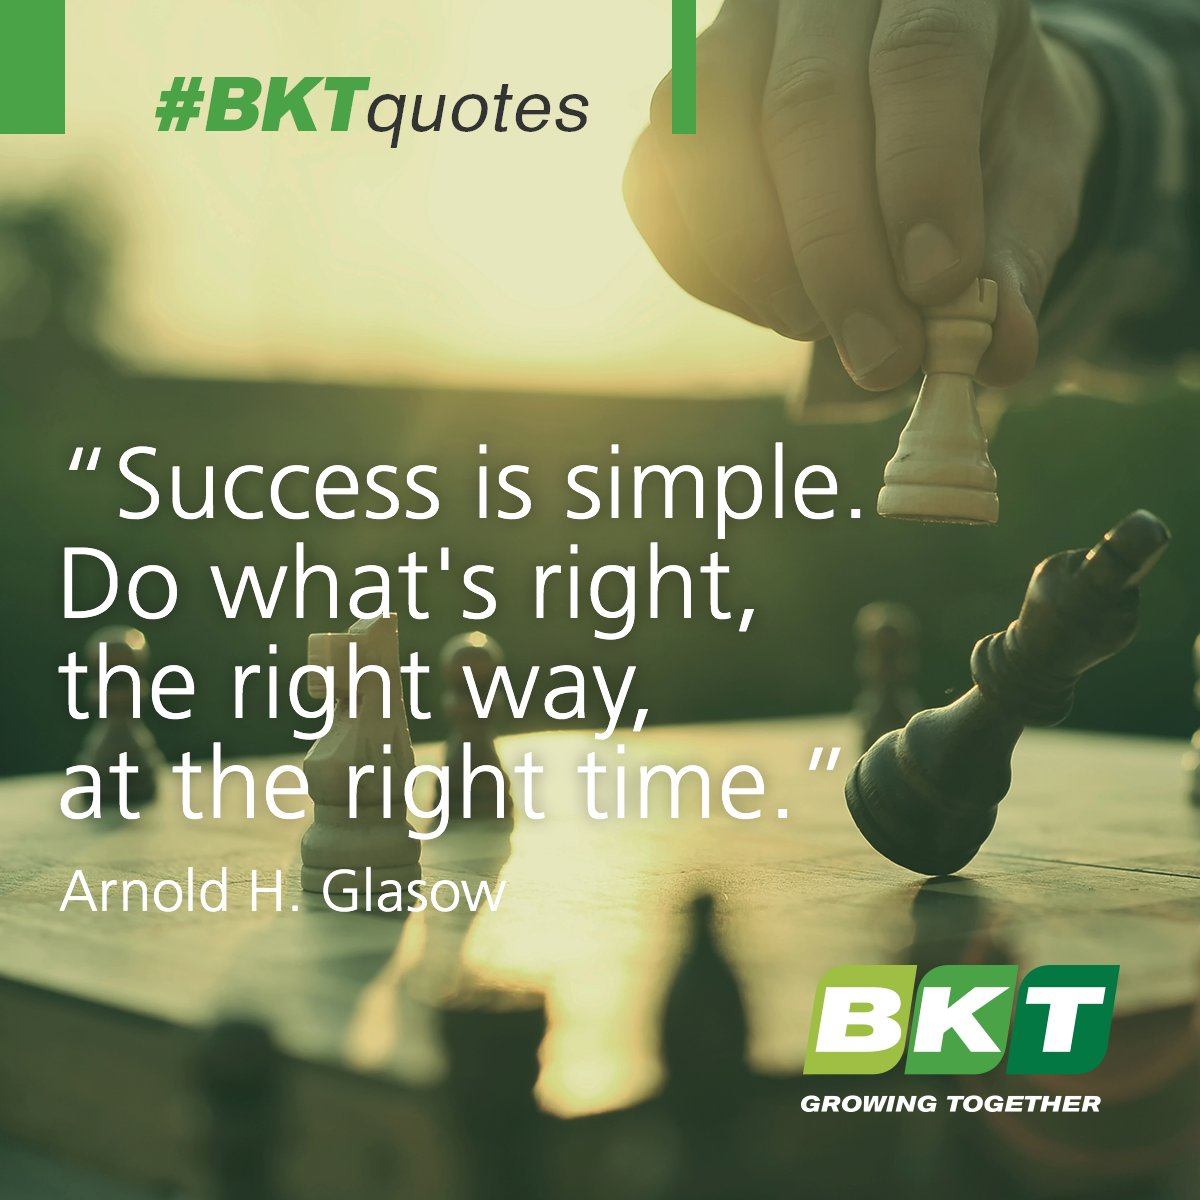 That's… right, don't you think? #BKTquotes #success #quotes #tires https://t.co/as28hdW3cC